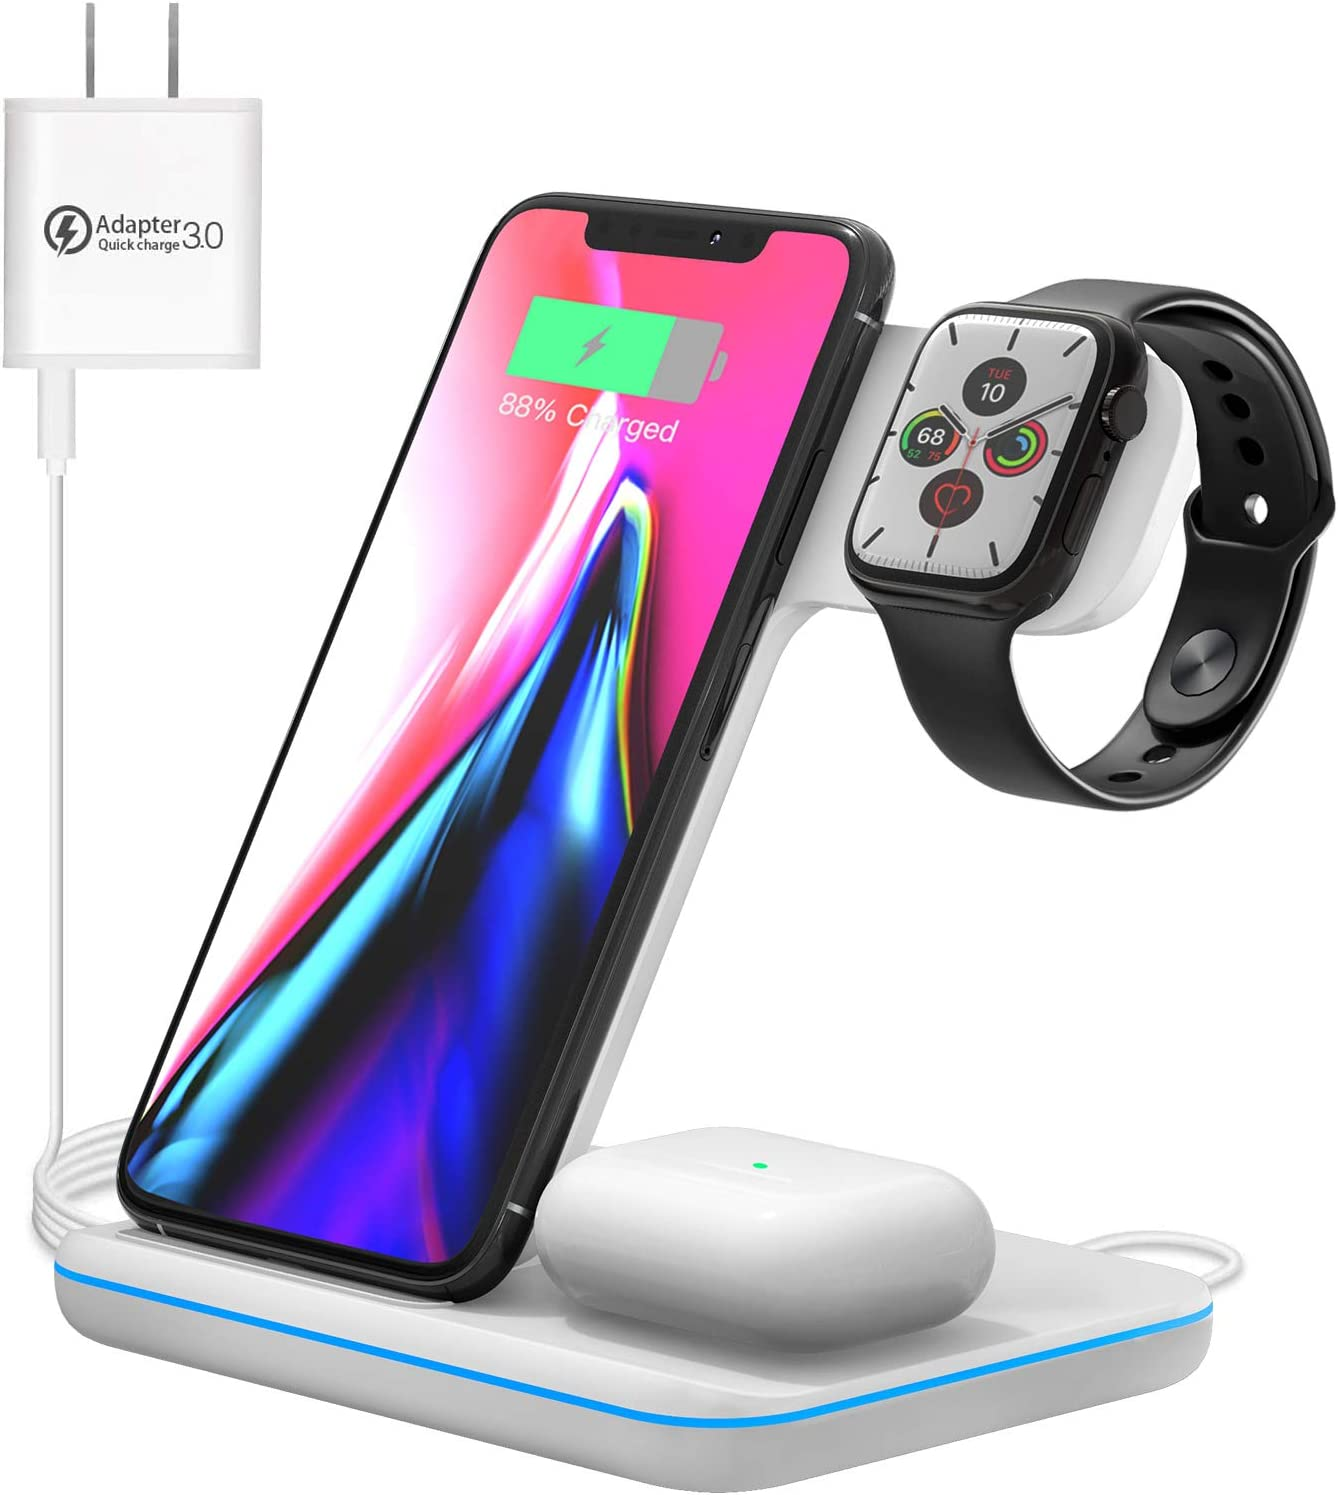 Wireless Charging Station, 3 in 1 Qi Charger for Apple Watch 1/2/3/4/5/SE/6 Airpods 2/pro Wireless Charger for iPhone 12/11/11 Pro/11 Pro Max/XS Max/XS XR Plus: Electronics